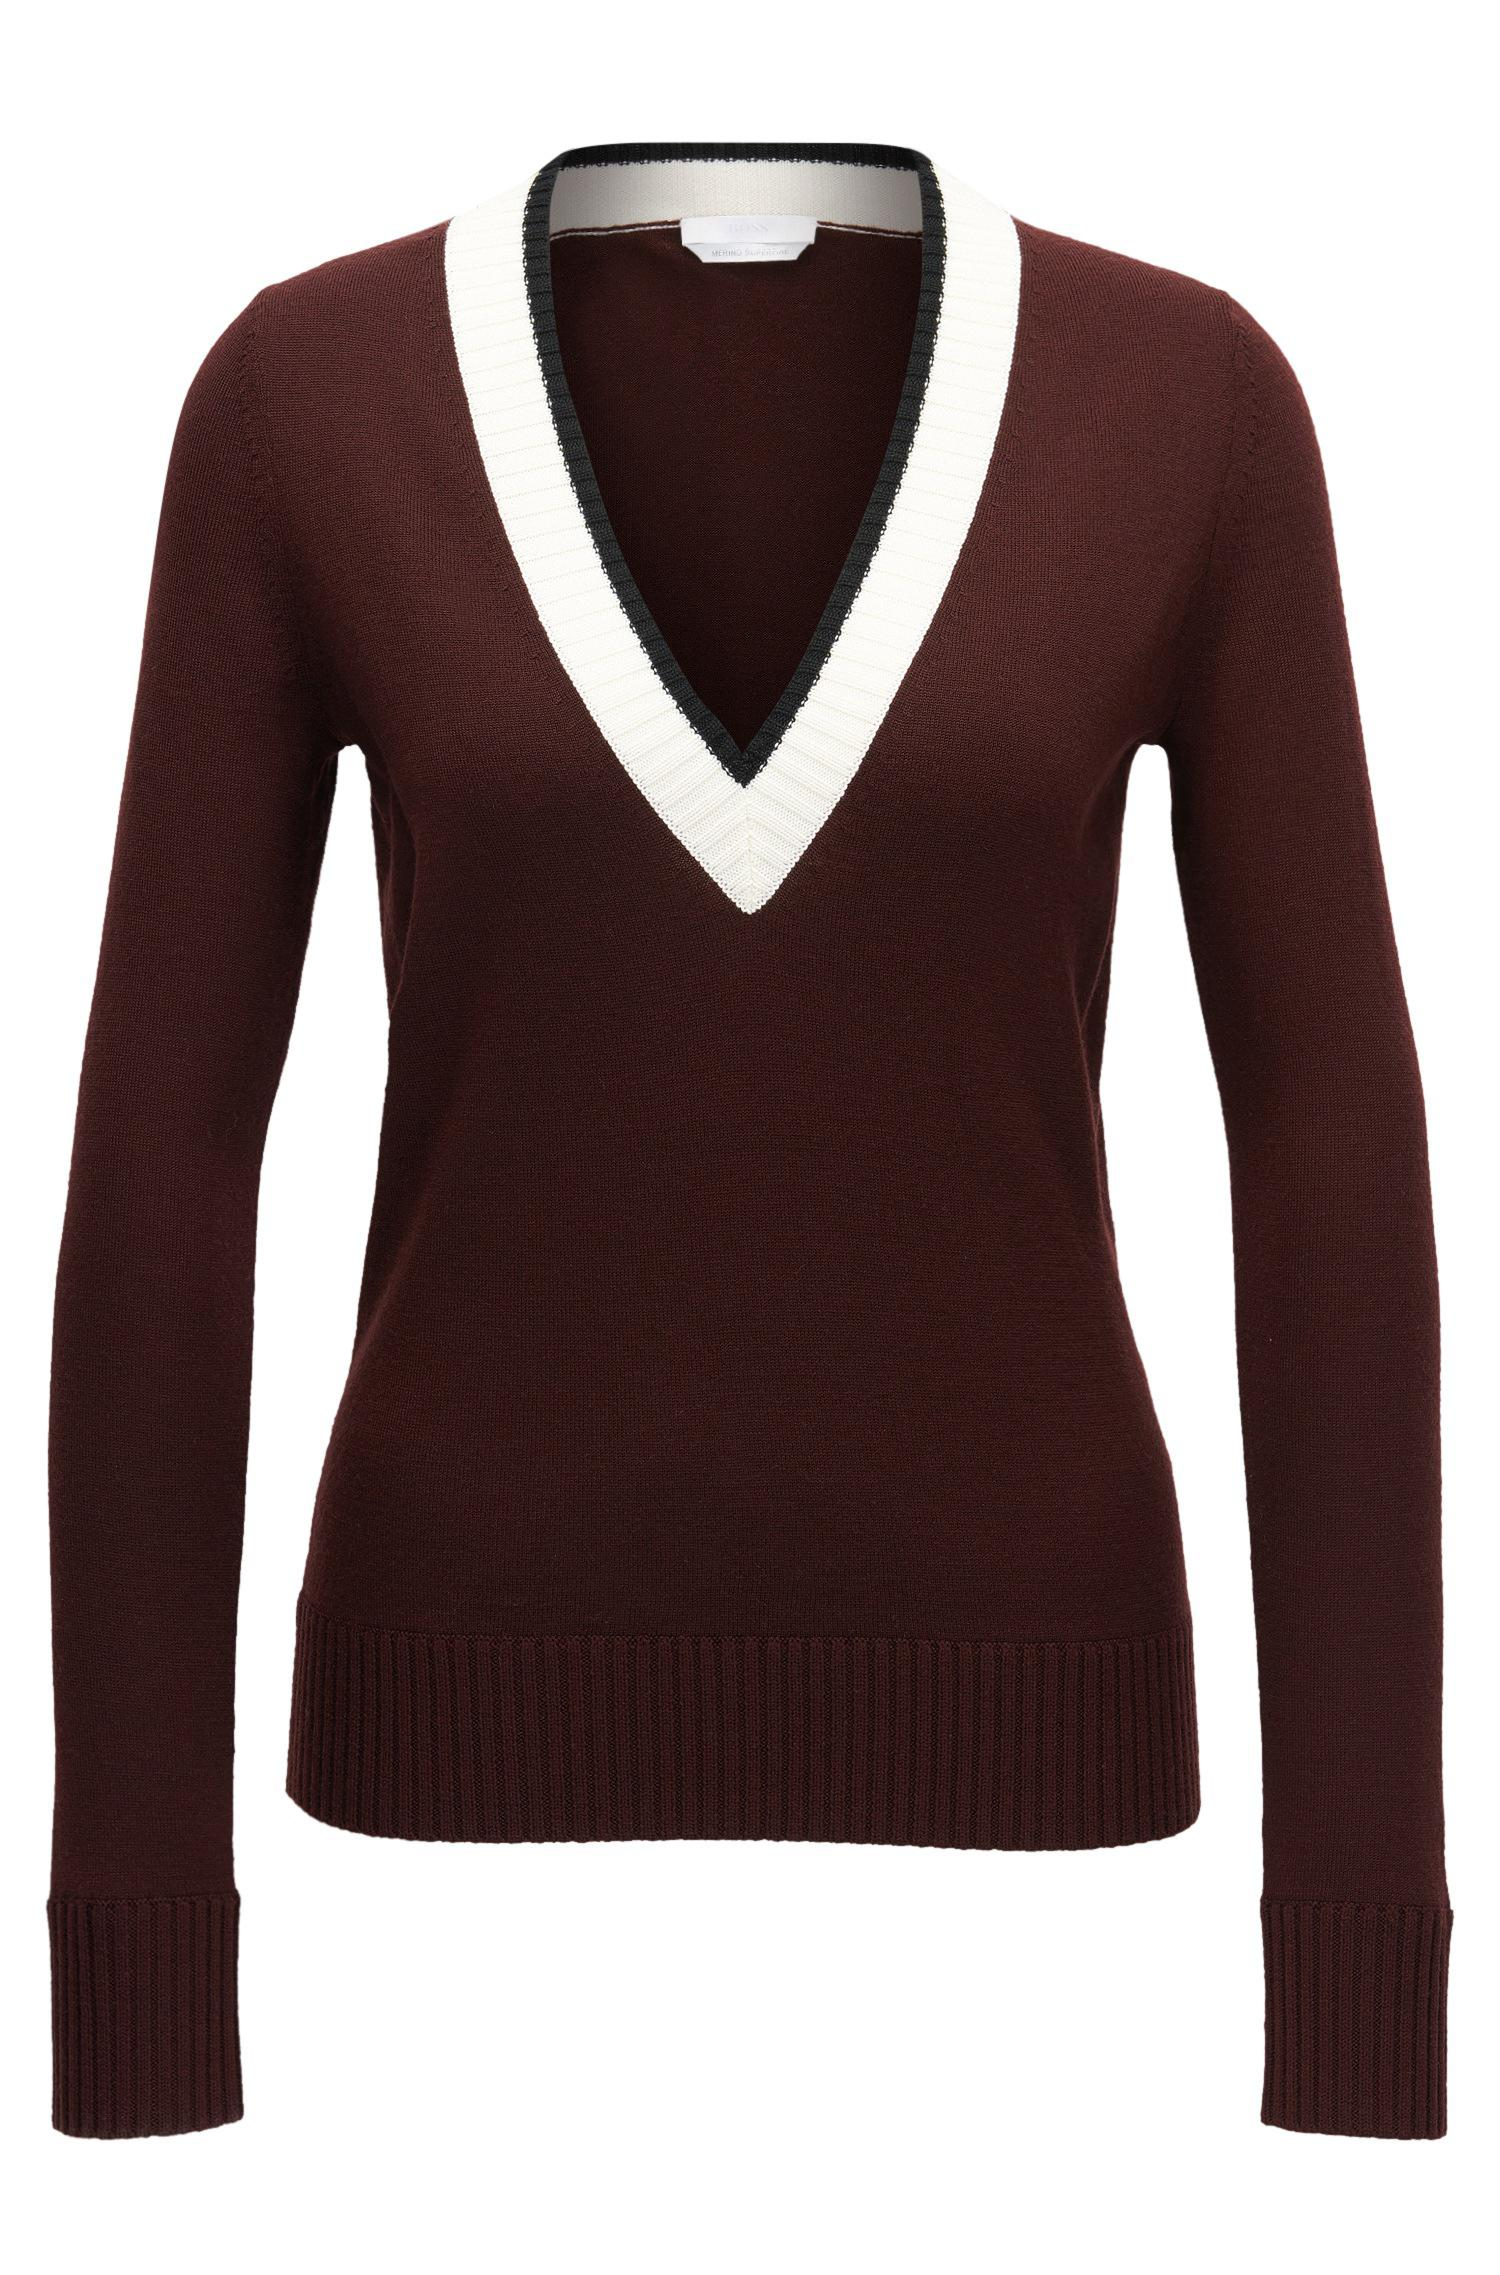 Cheap Visit New Cheap Sale Fashionable Crew-neck sweater in virgin wool BOSS Clearance Purchase Clearance Cheap Online Discount Choice Ez3uc